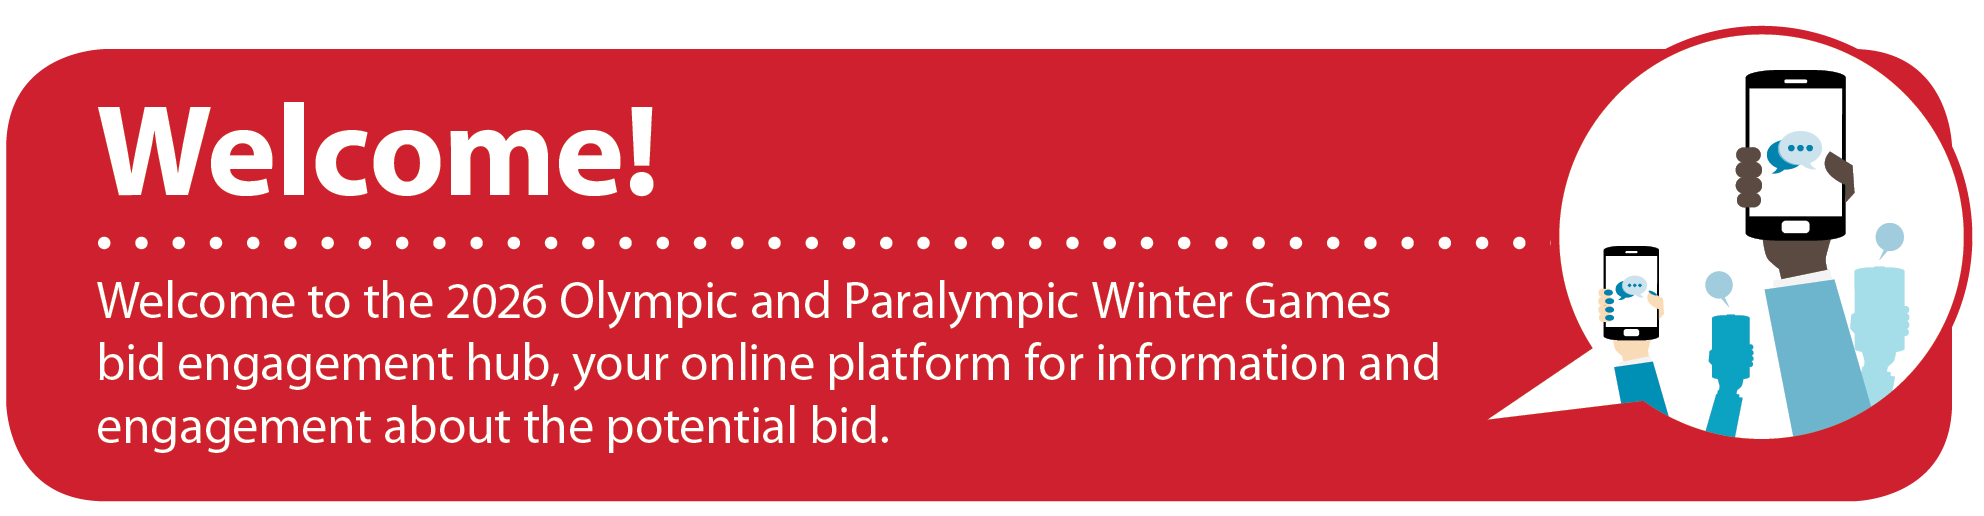 Welcome to the 2026 Olympic and Paralympic Bid Engagement Hub, your online platform for information and engagement about the bid.